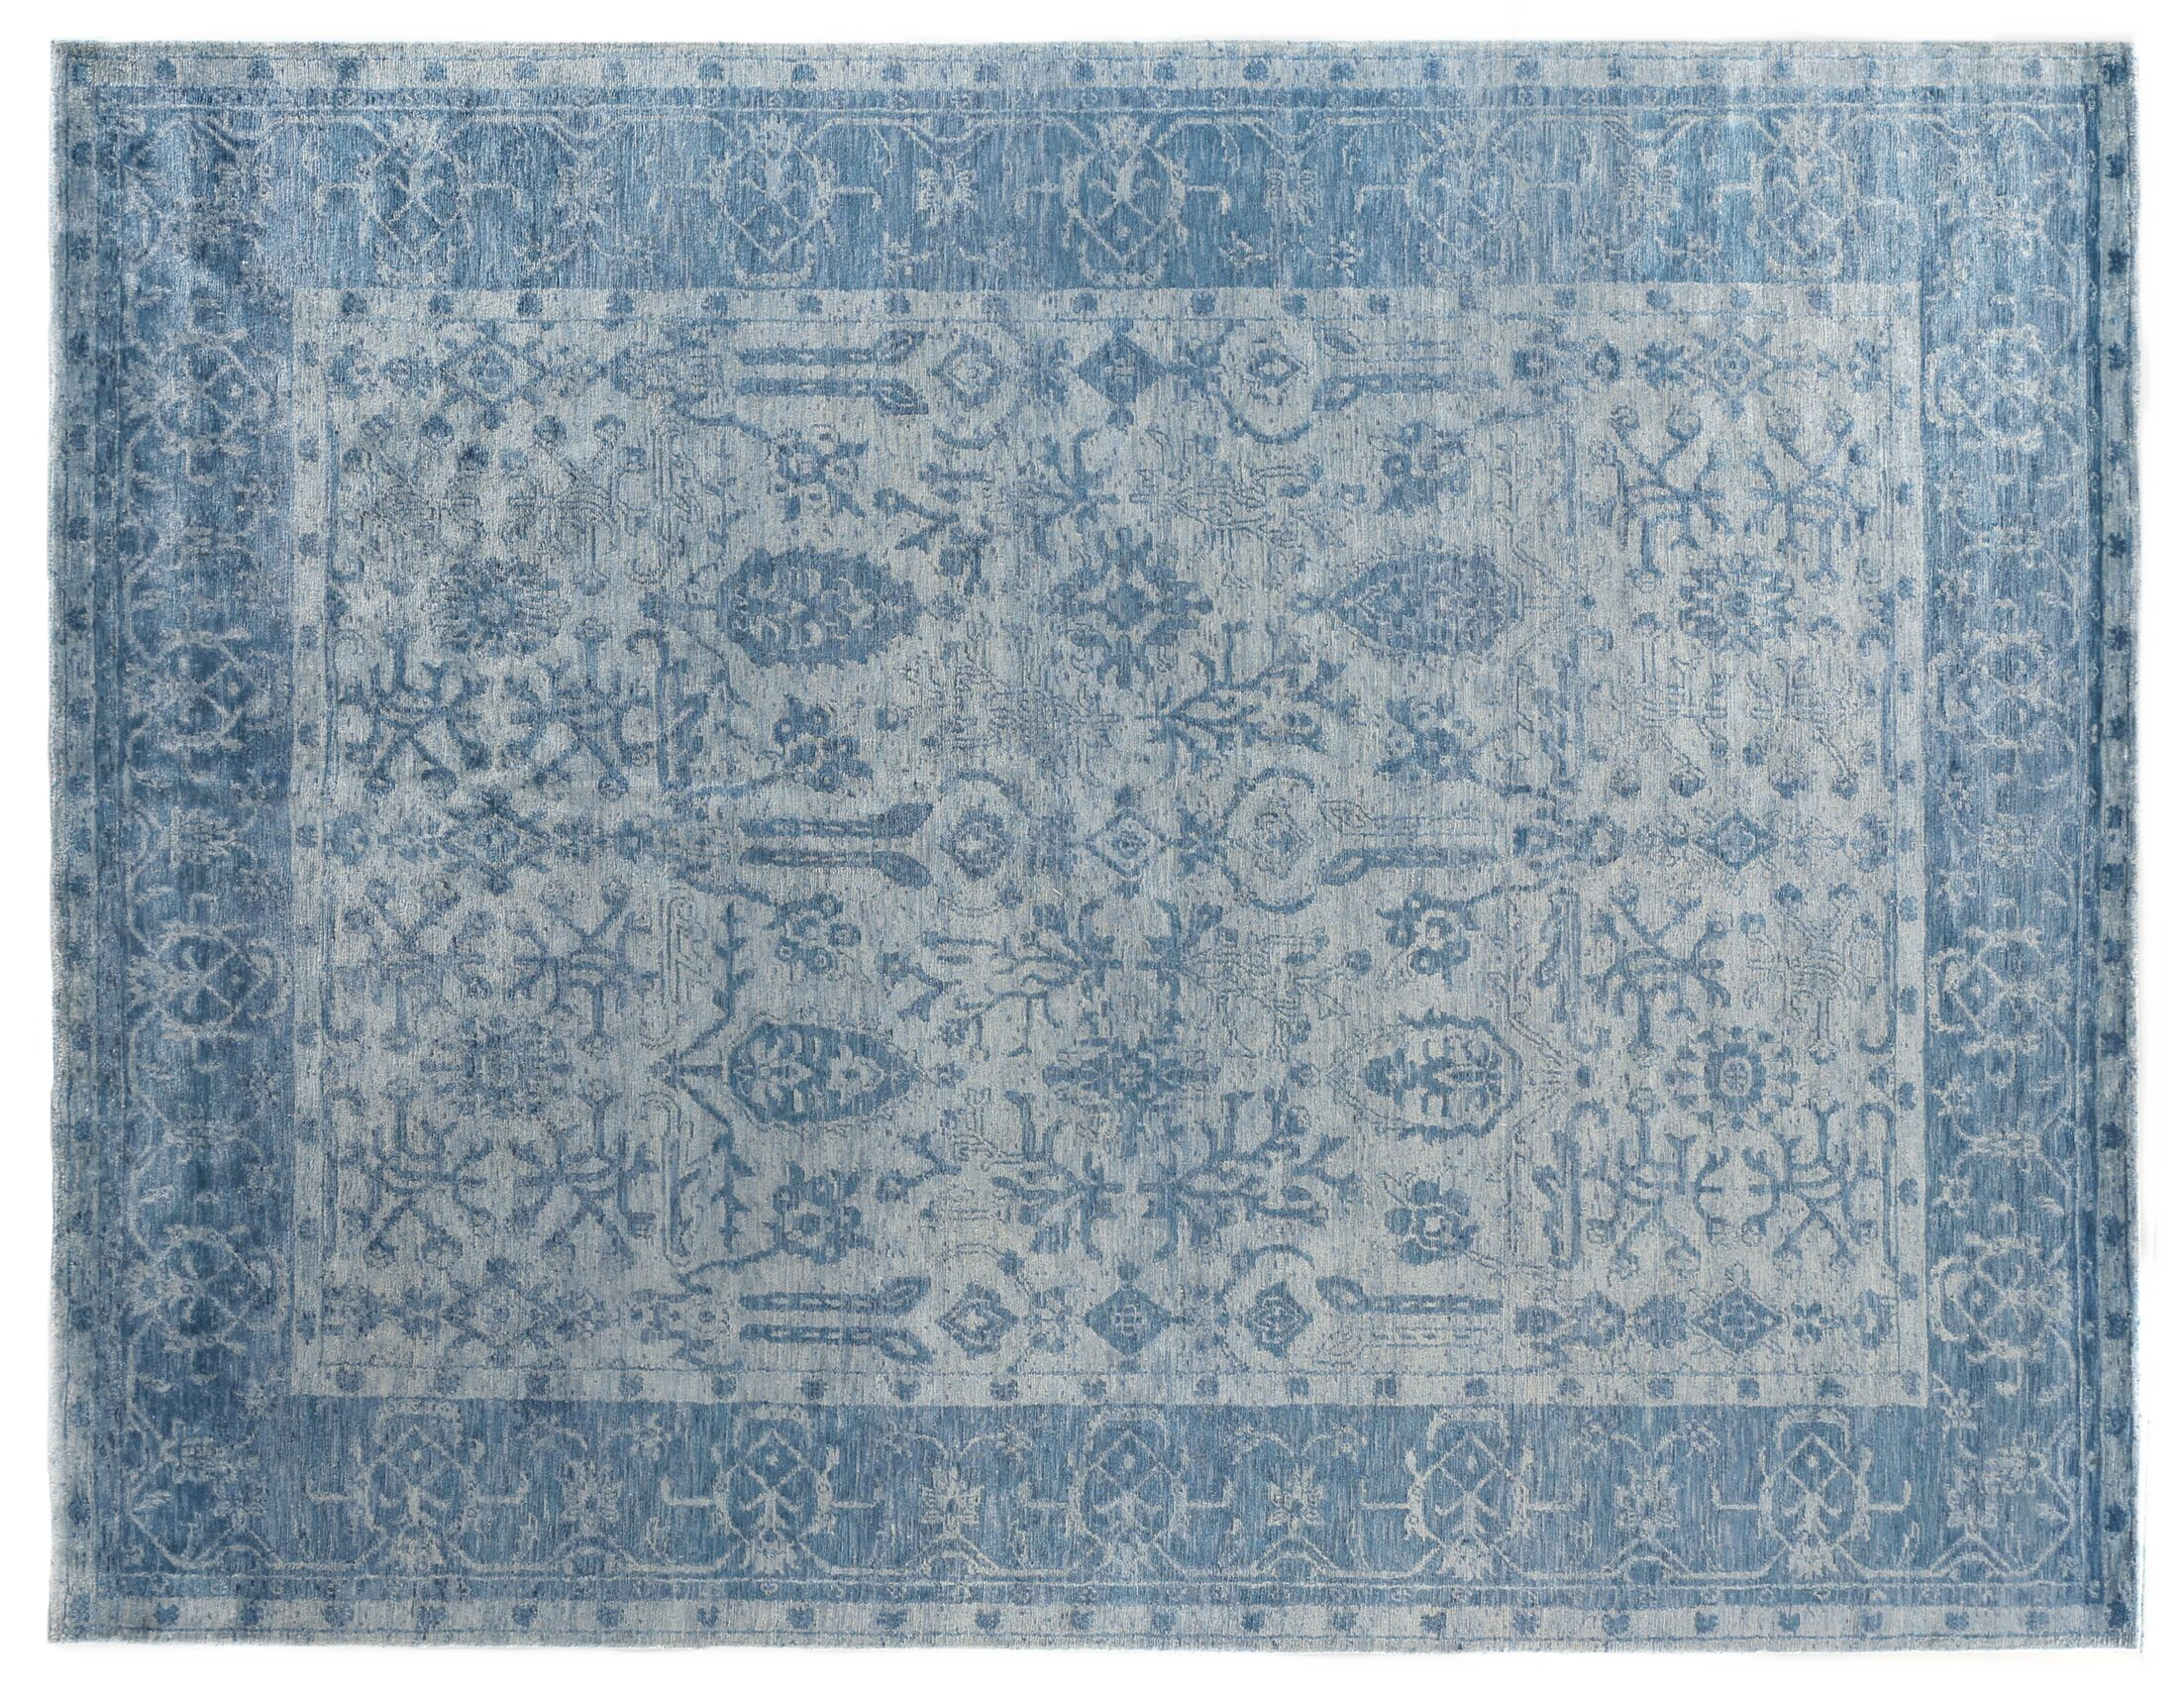 Antique'd Hand-Knotted Silk Ivory/Aqua Area Rug Rug Size: Rectangle 14' x 18'